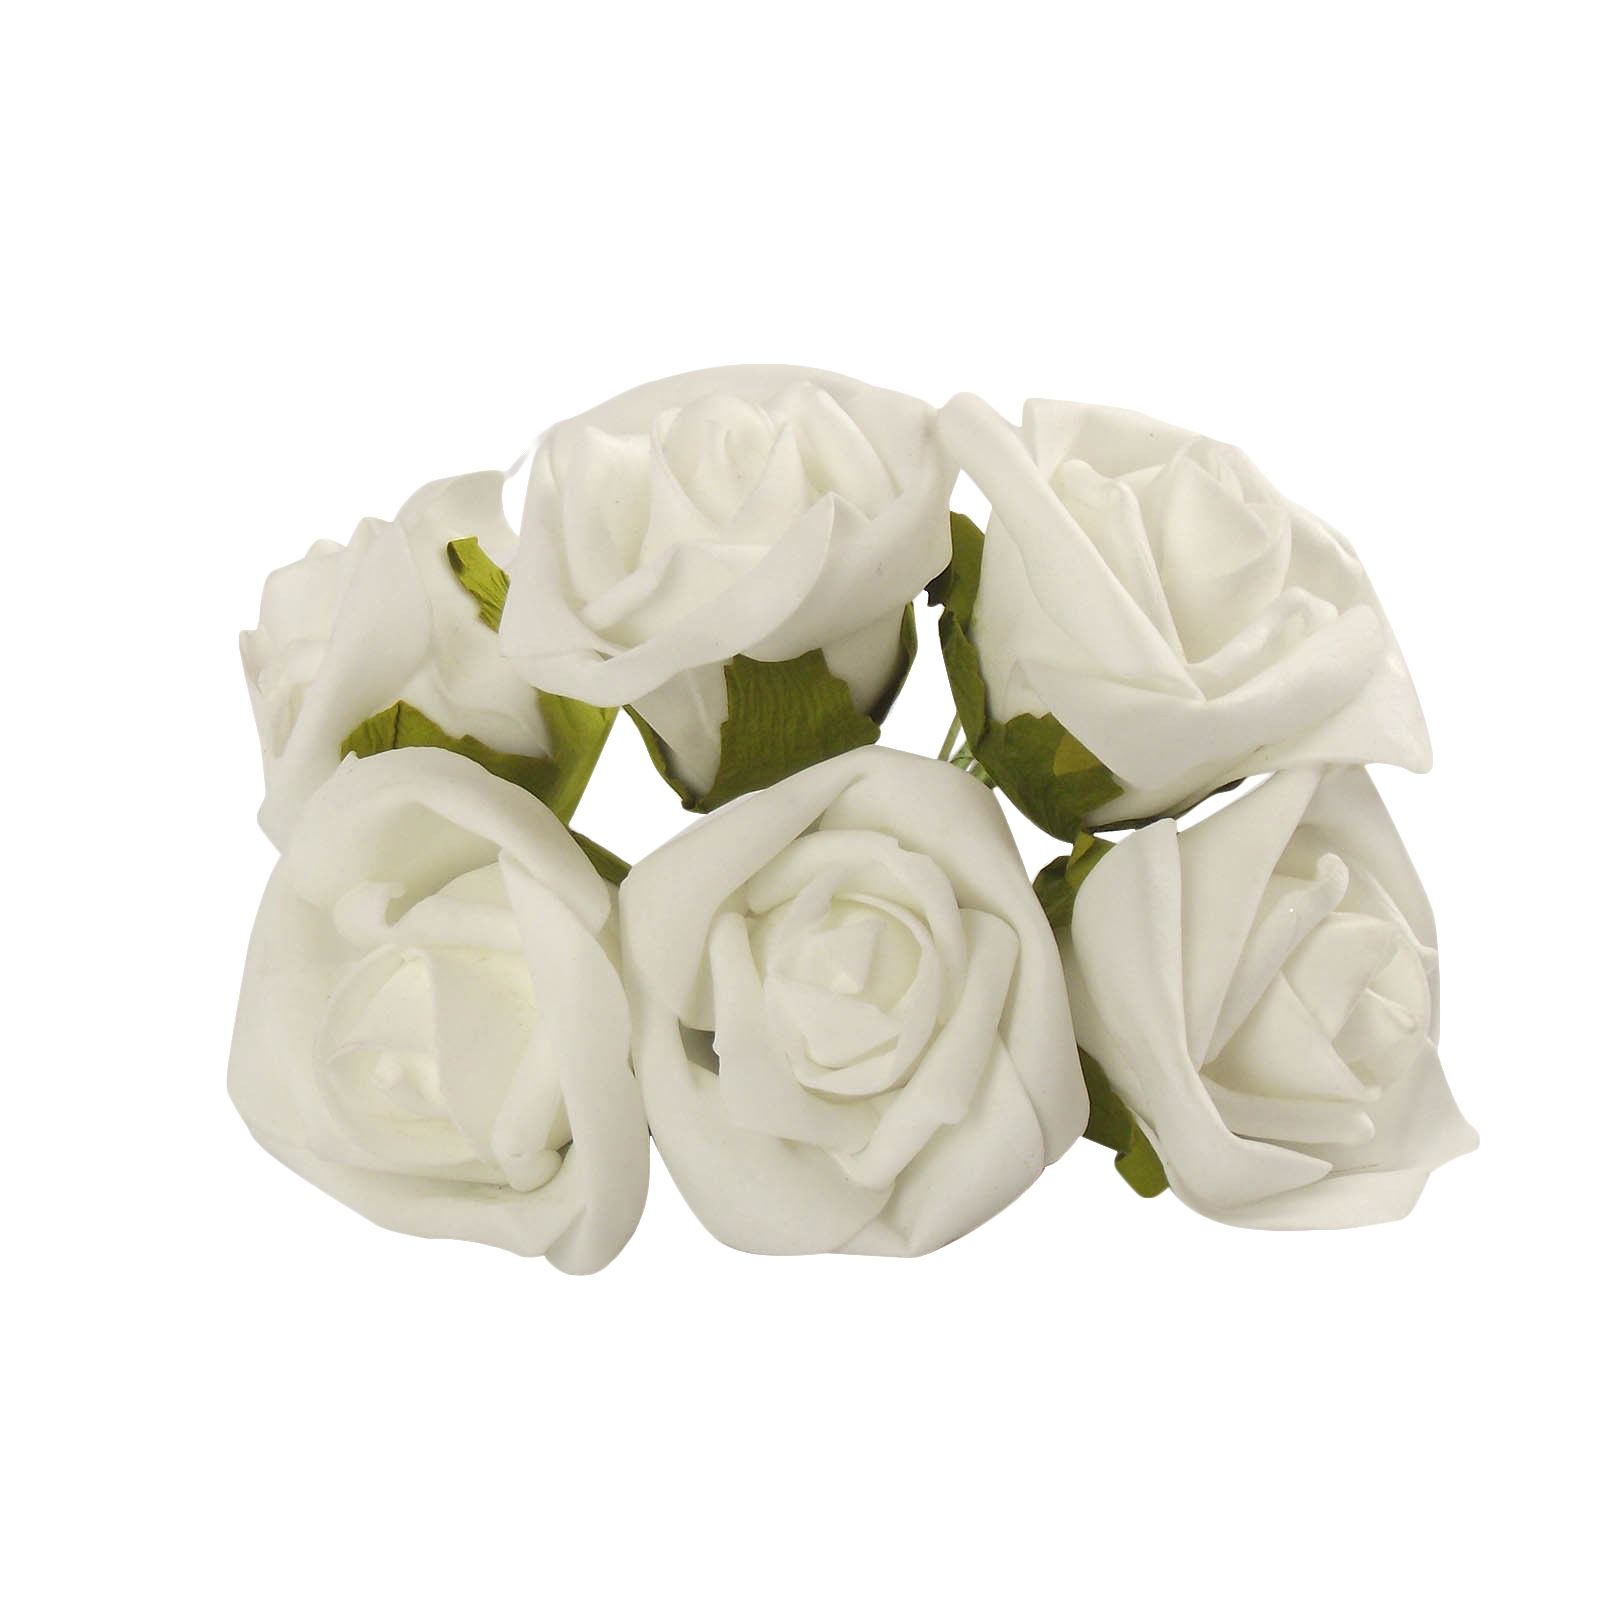 Bunch of 6 soft colourfast roses artificial foam flowers wedding picture 2 of 2 mightylinksfo